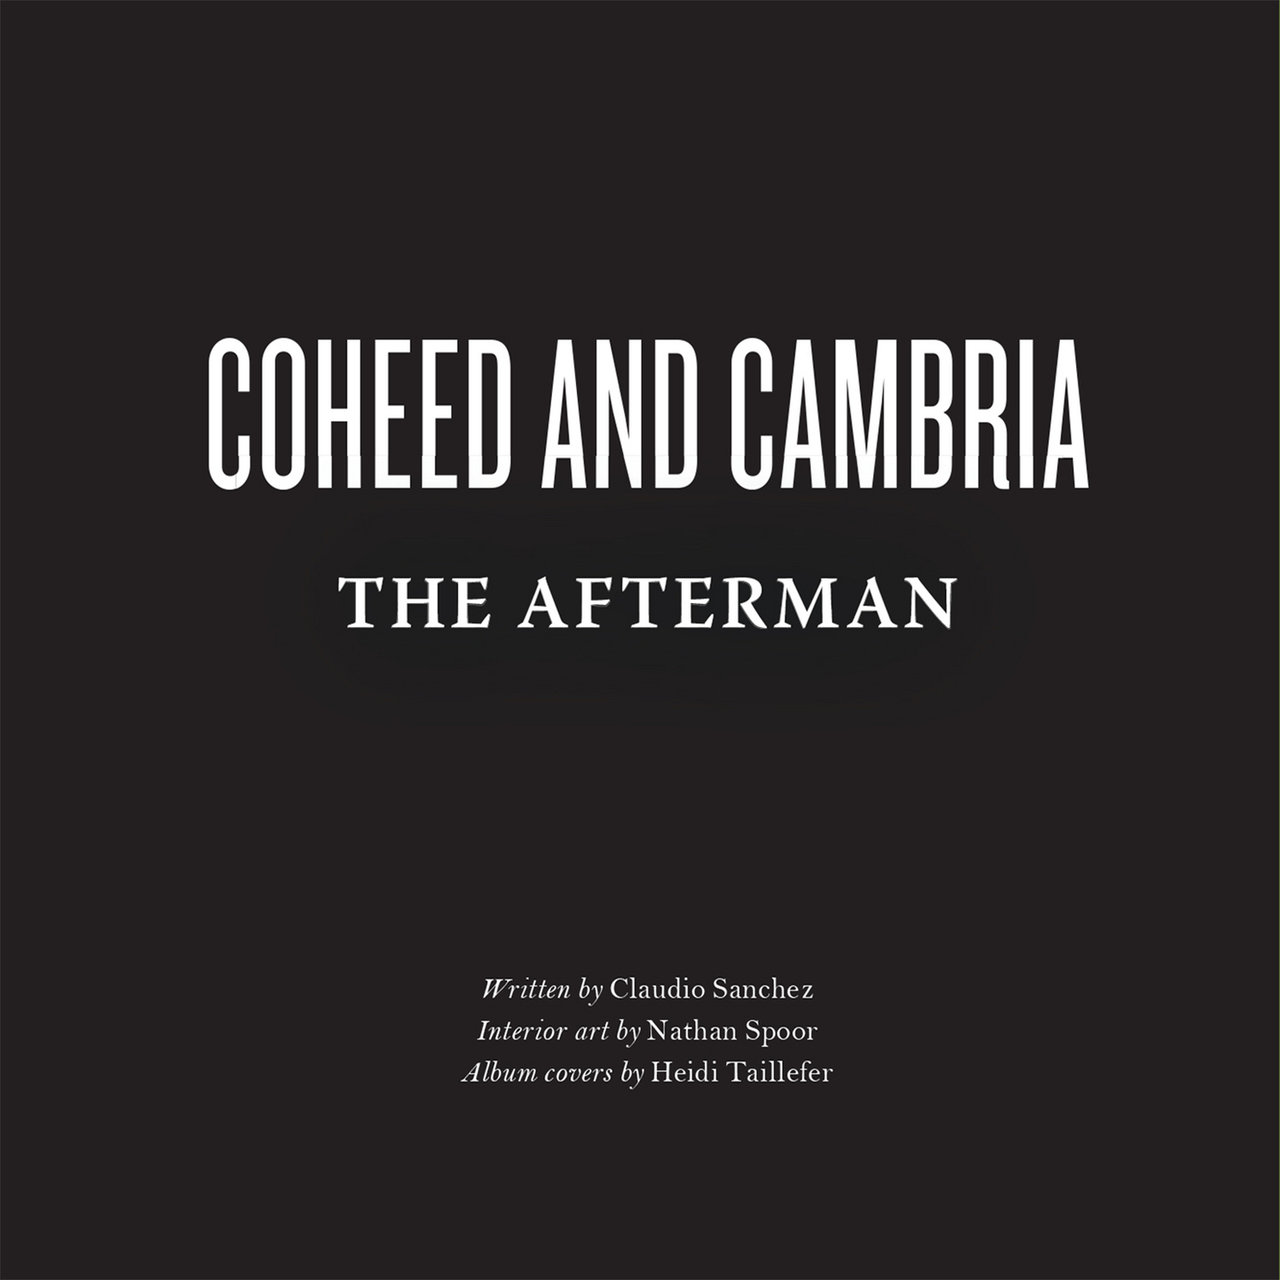 The Afterman: Tour Edition (Deluxe Set)